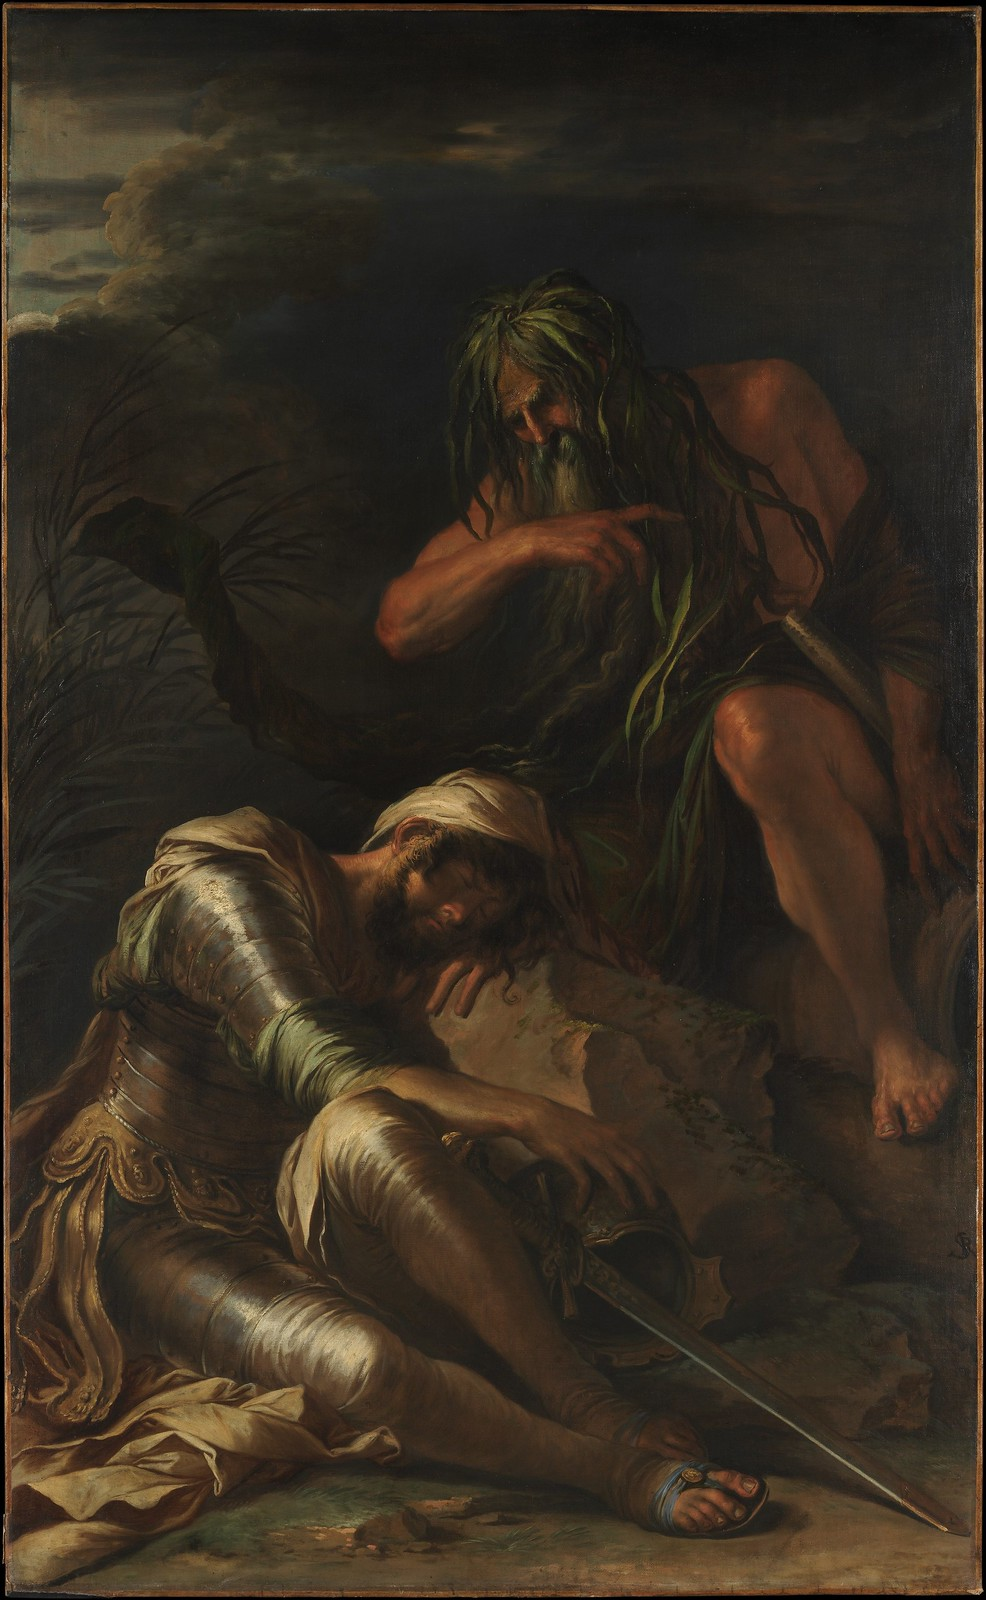 Salvator Rosa - The Dream of Aeneas, 1660-65